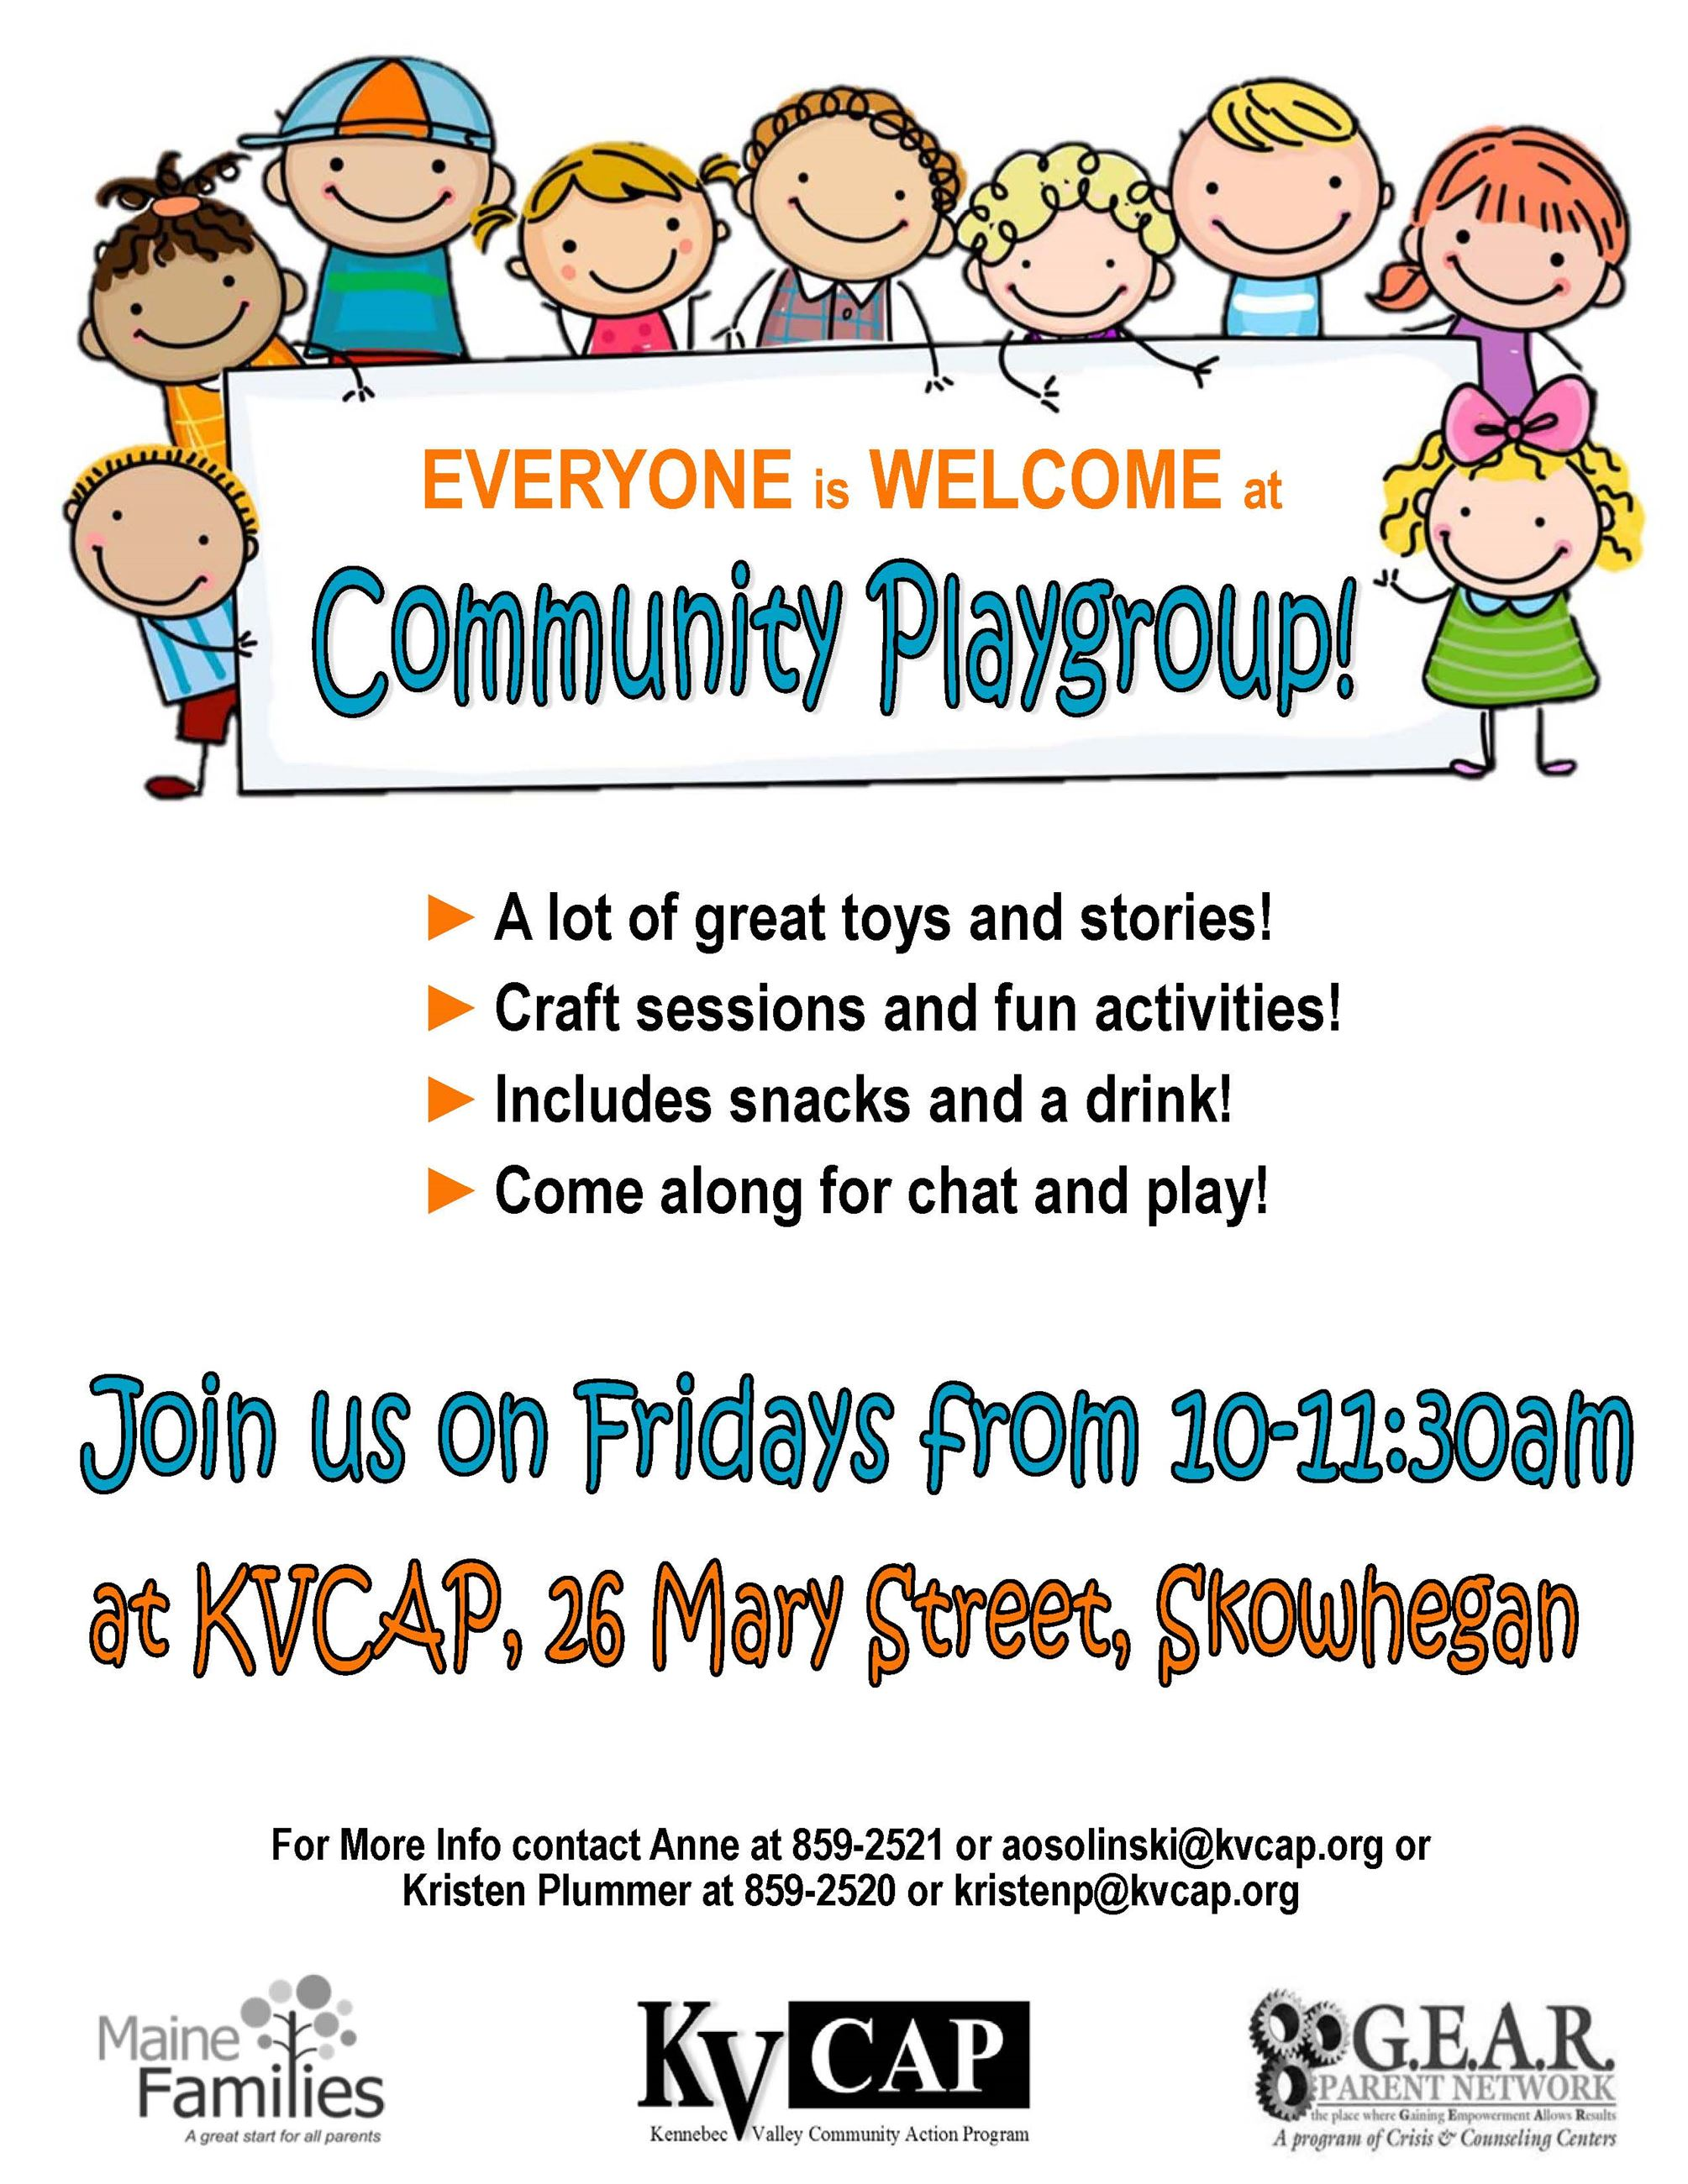 2018 Skowhegan Community Playgroup